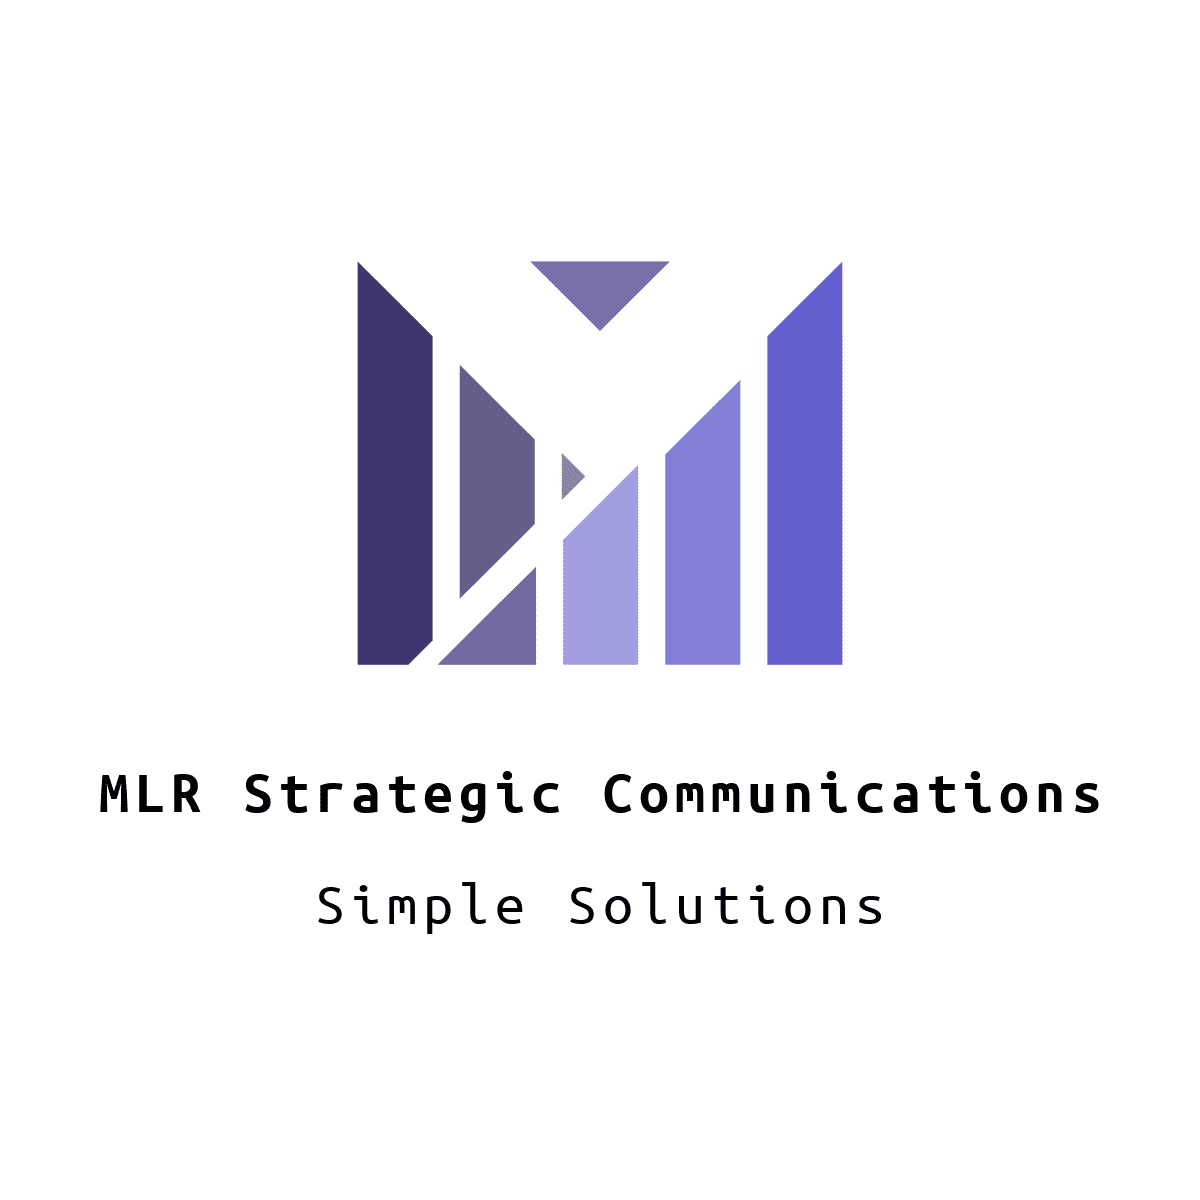 MLR Strategic Communications